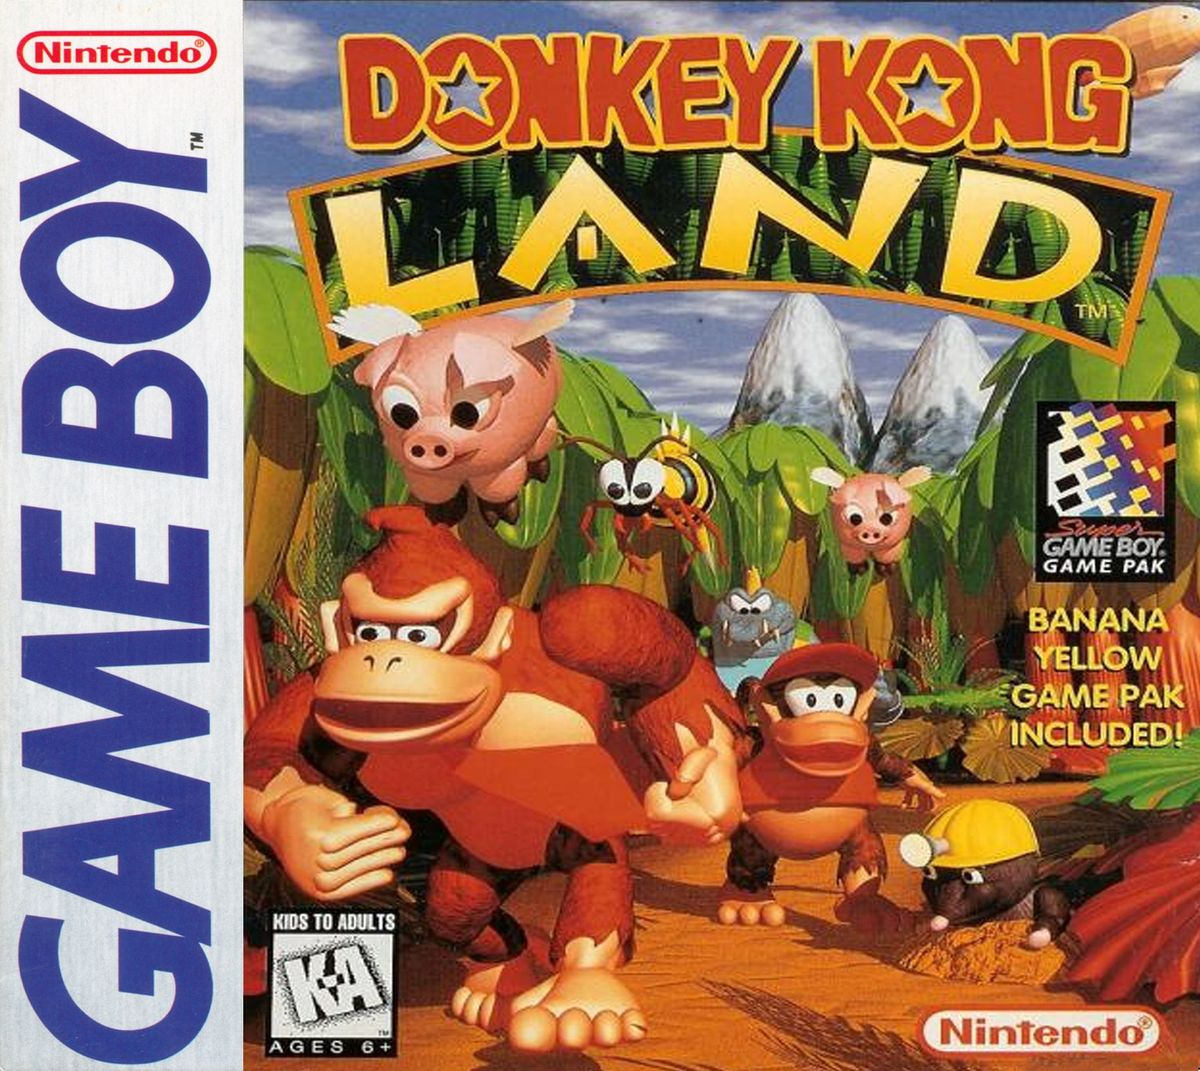 Donkey Kong Land turns 25 on June 26th